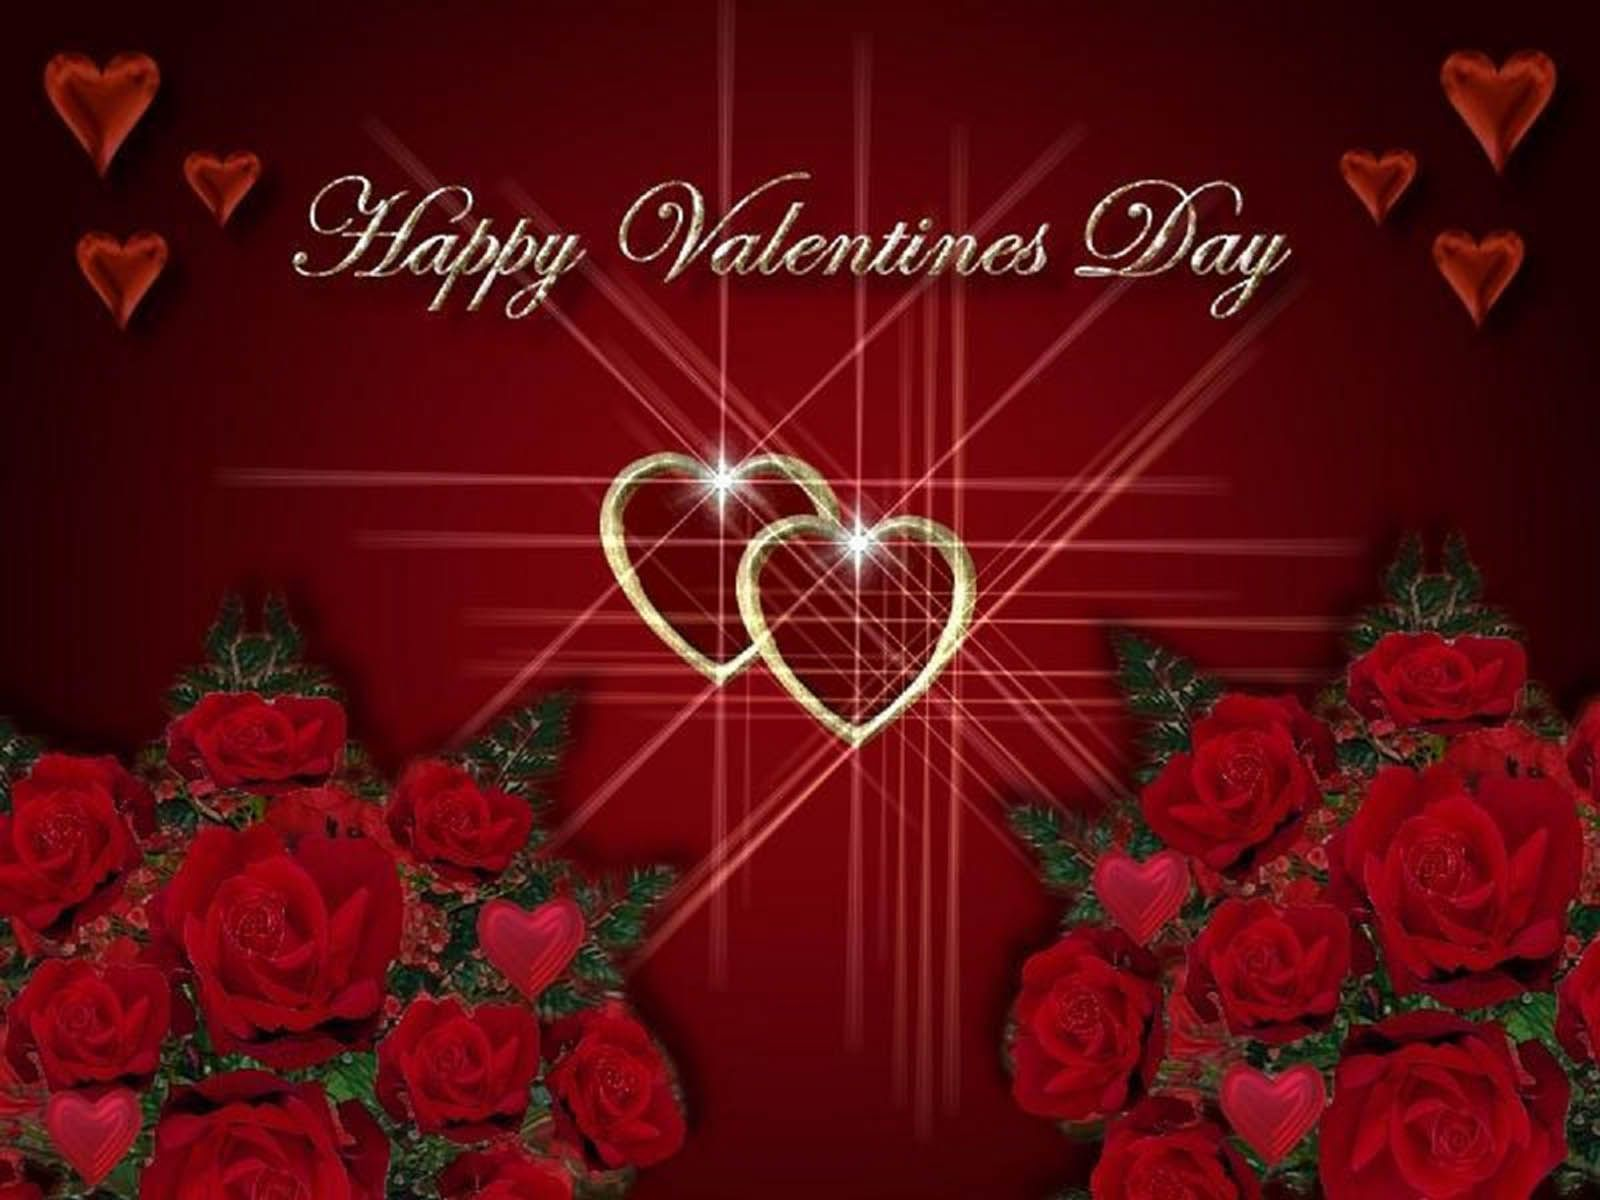 happy valentines day 2017 images photos free download hello friends hope you also enjoy - Valentine Day Pics For Free